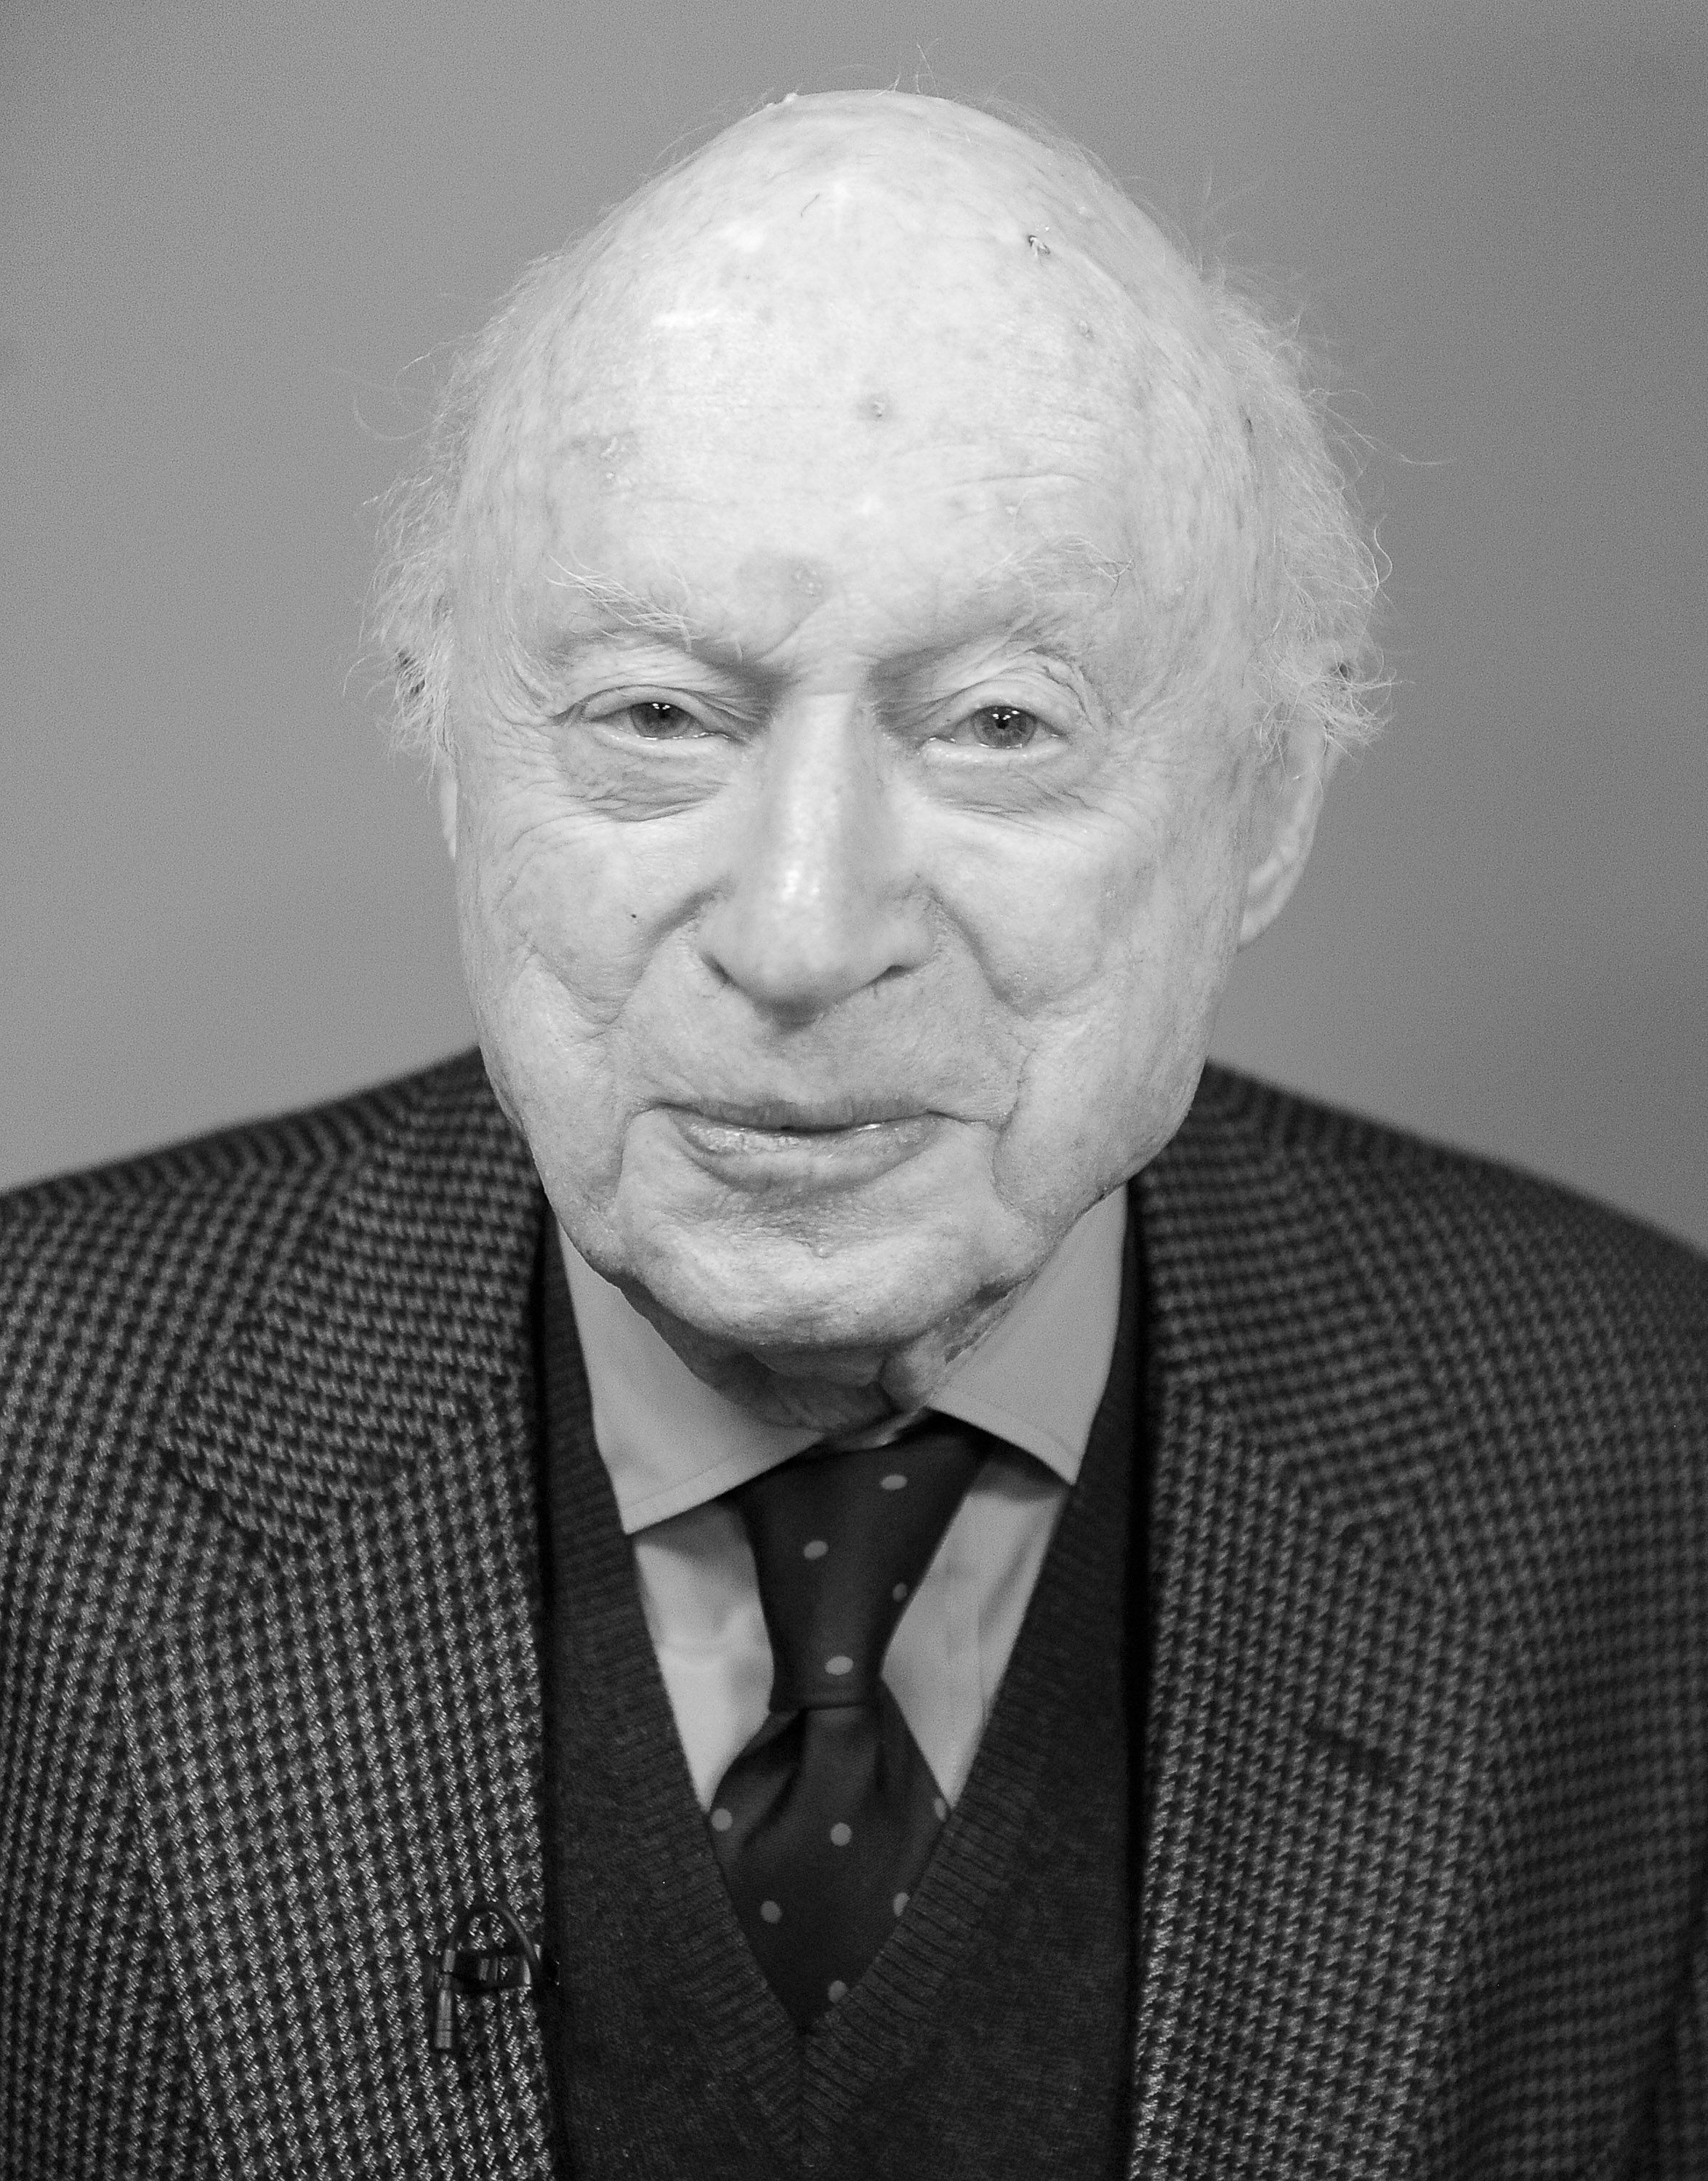 LOS ANGELES, CA - JANUARY 06:  (EDITORS NOTE: Image has been converted to black and white.)  Actor Norman Lloyd attends his Career Reflection and Q&A at SAG Foundation Actors Center on January 6, 2015 in Los Angeles, California.  (Photo by Angela Weiss/Getty Images for SAG Foundation)